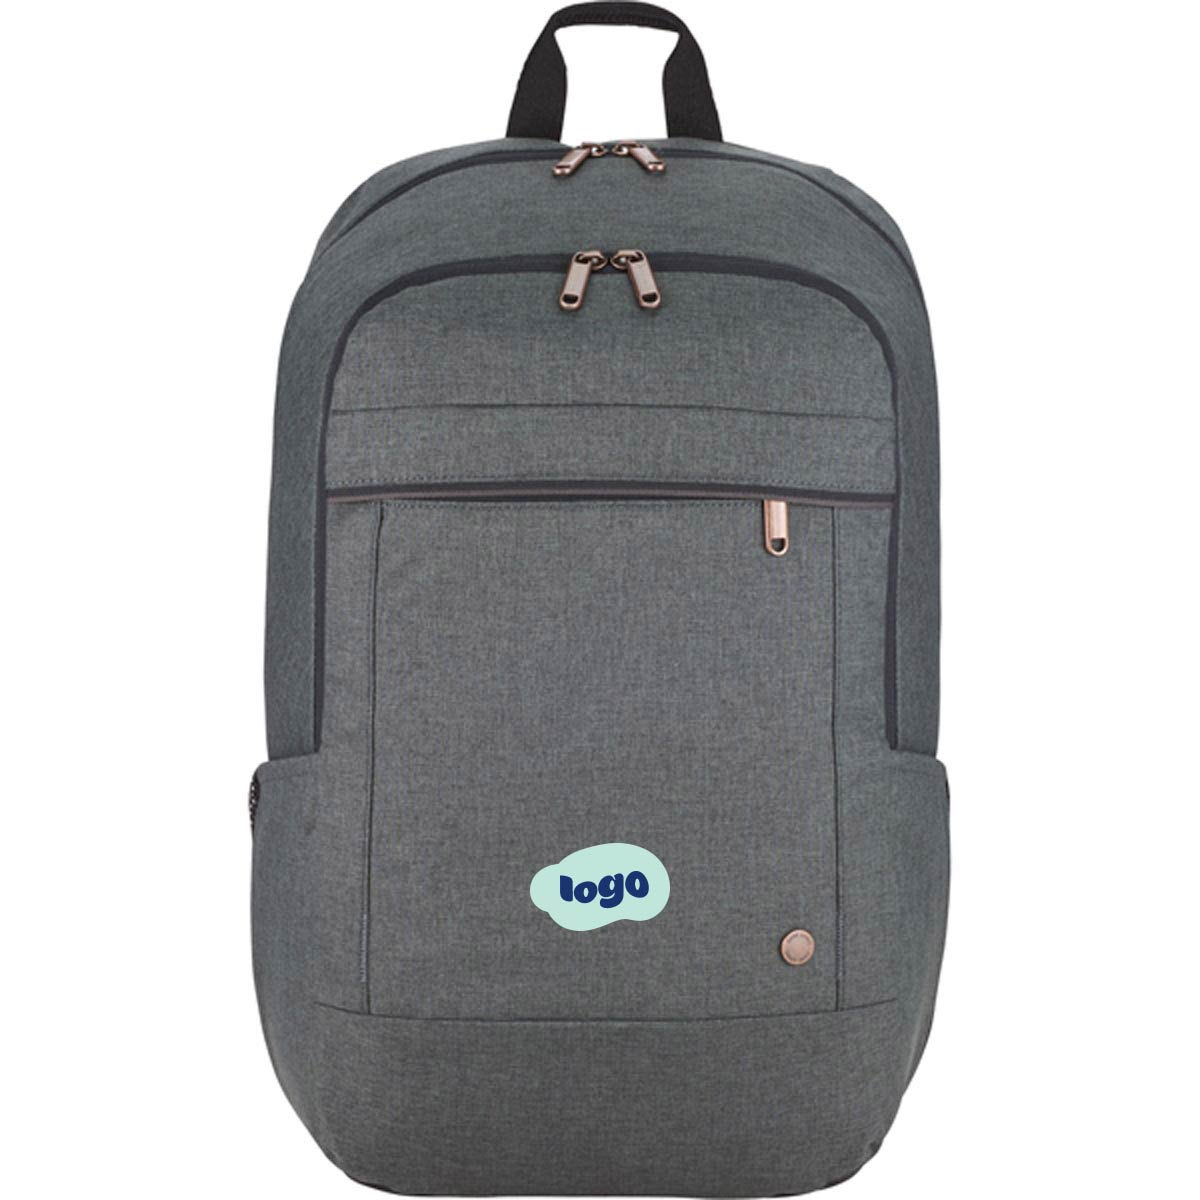 267951 era computer backpack two color one location imprint